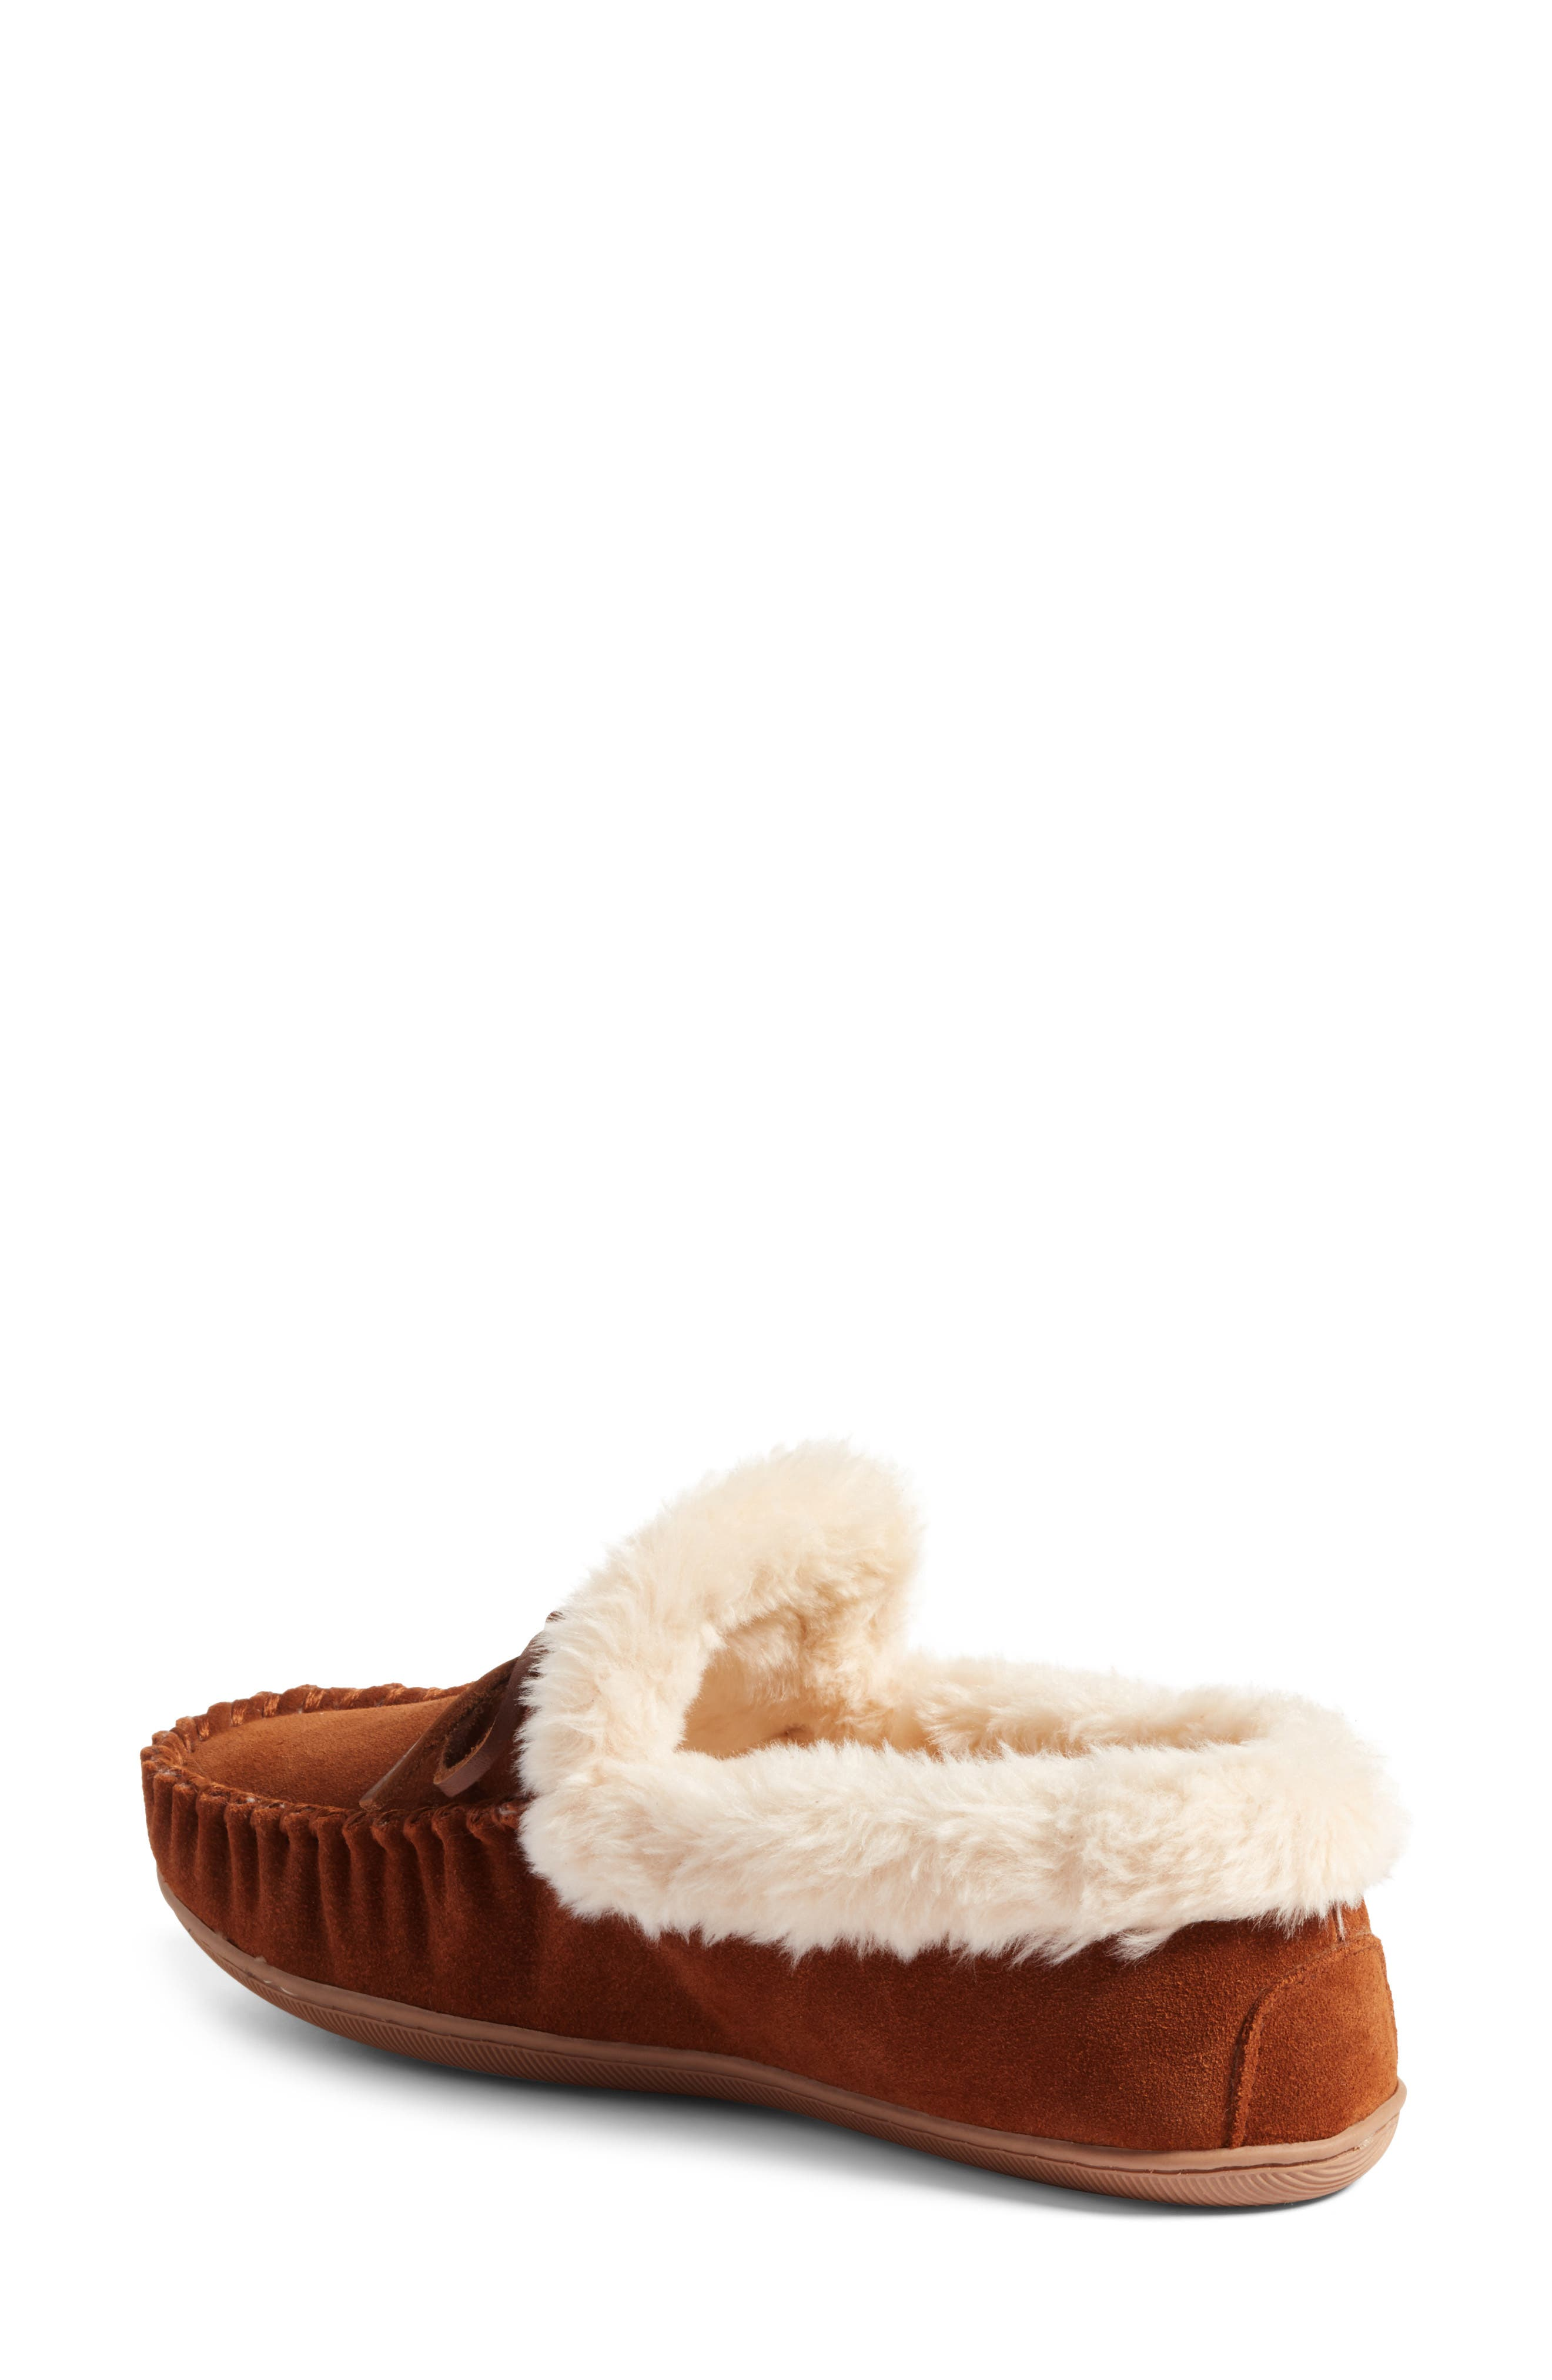 J.Crew Lodge Faux Shearling Moc Slipper,                             Alternate thumbnail 3, color,                             Dark Nutmeg Suede